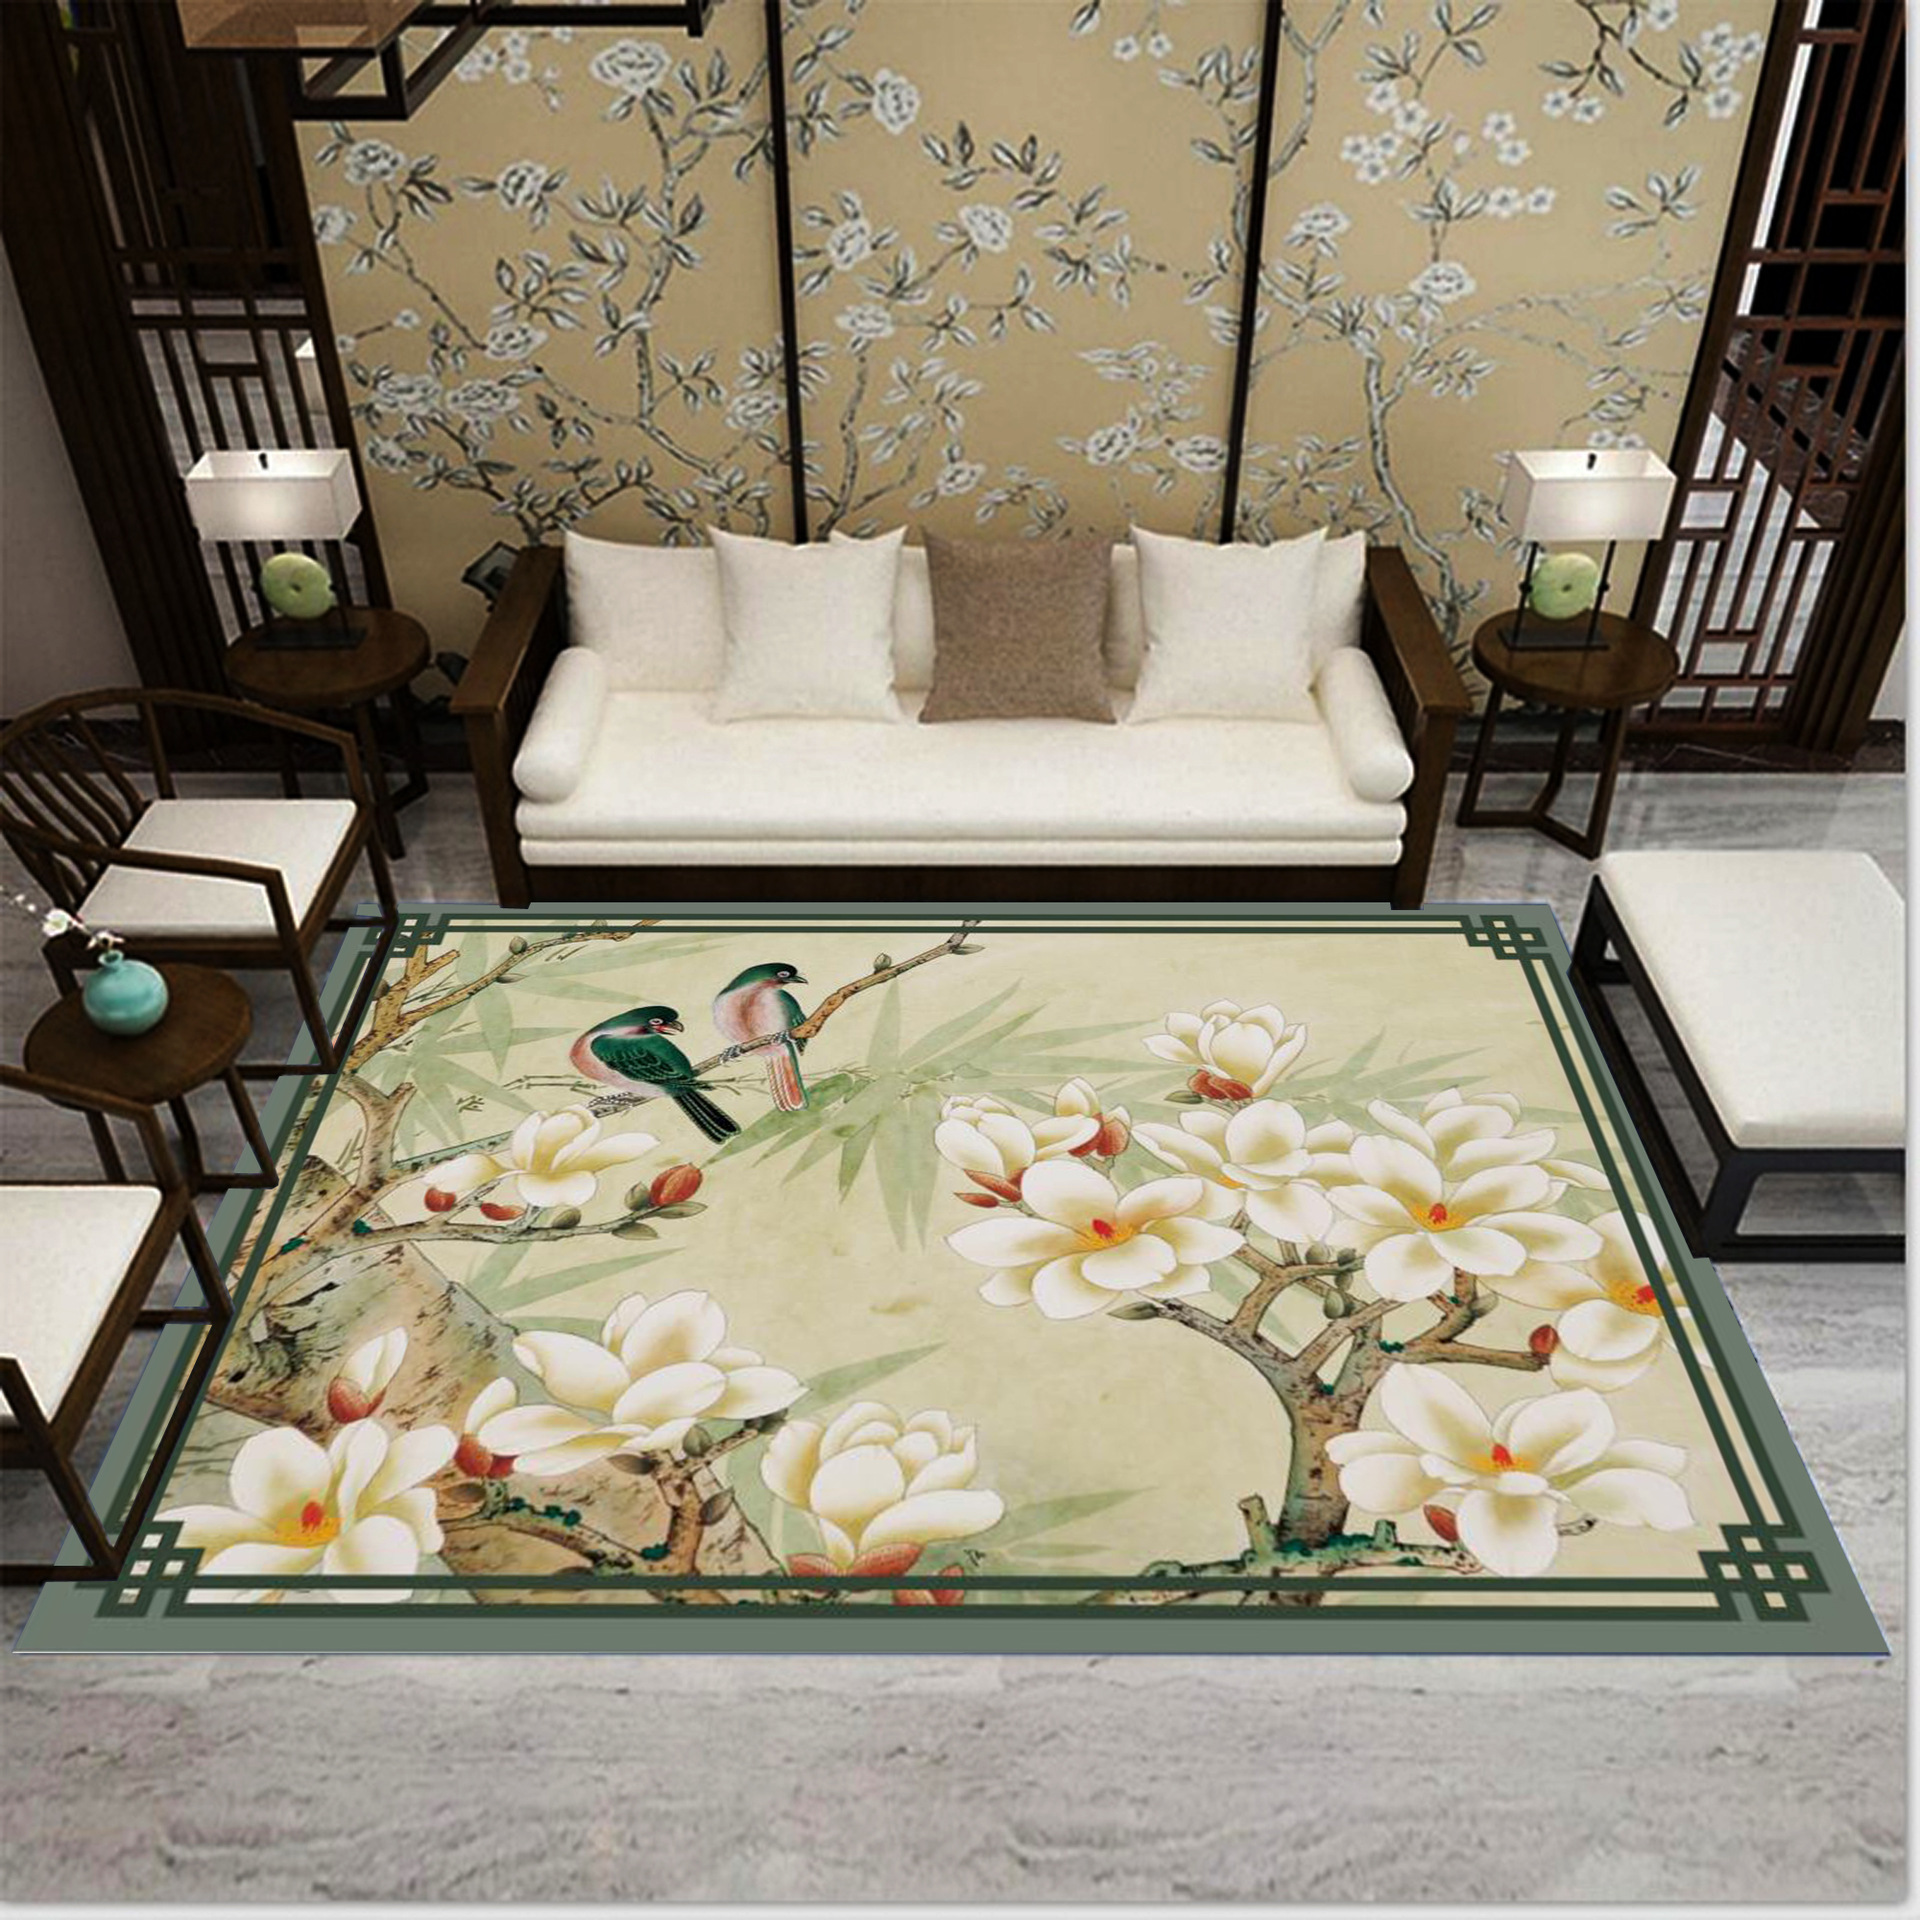 Chinese Style Flower Birds Carpet For Living Room Mat Rug 3D Large Carpets Study/Bedroom Bedside/Hallway Home Decor Runner Rug